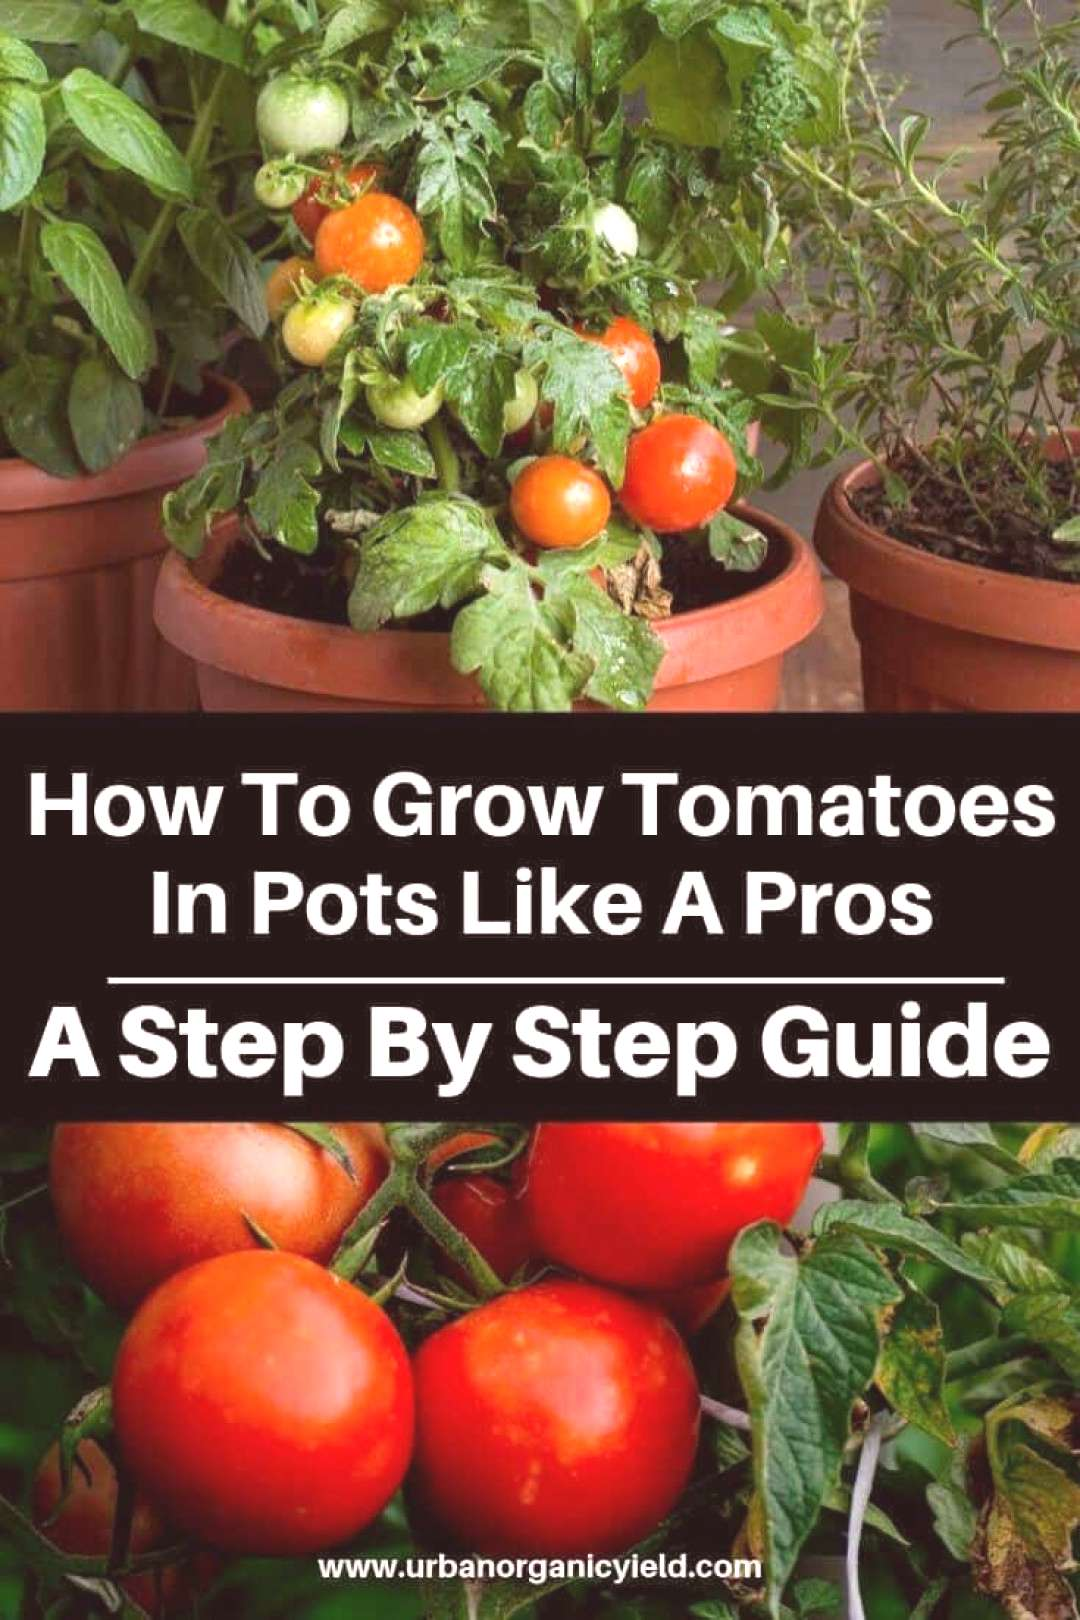 In this article, we'll take a closer look at popular types of tomatoes to grow in containers, and